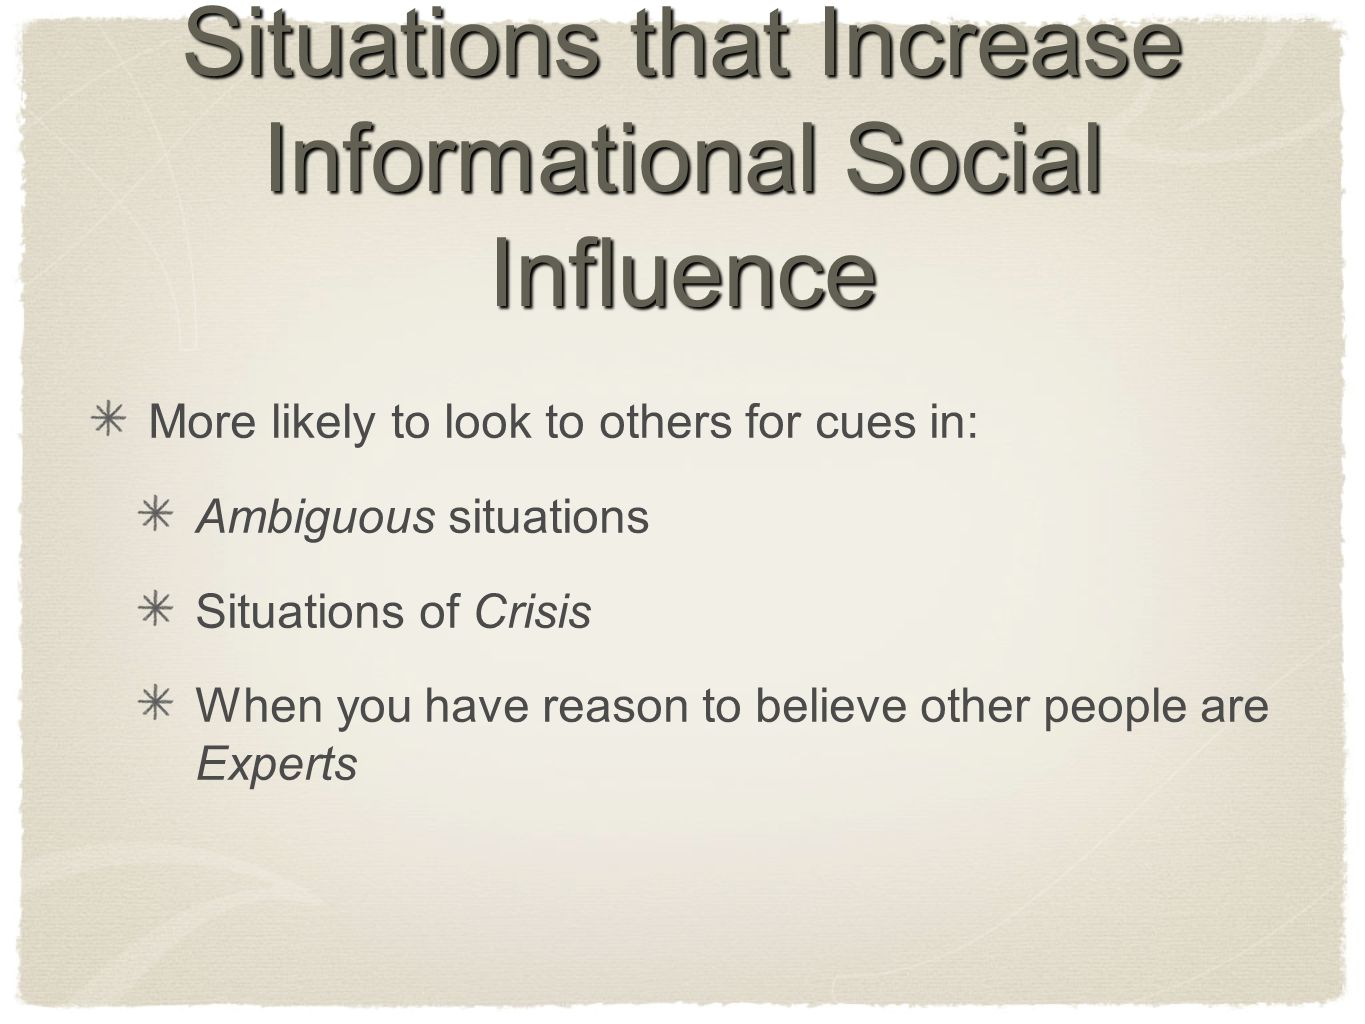 Situations that Increase Informational Social Influence More likely to look to others for cues in: Ambiguous situations Situations of Crisis When you